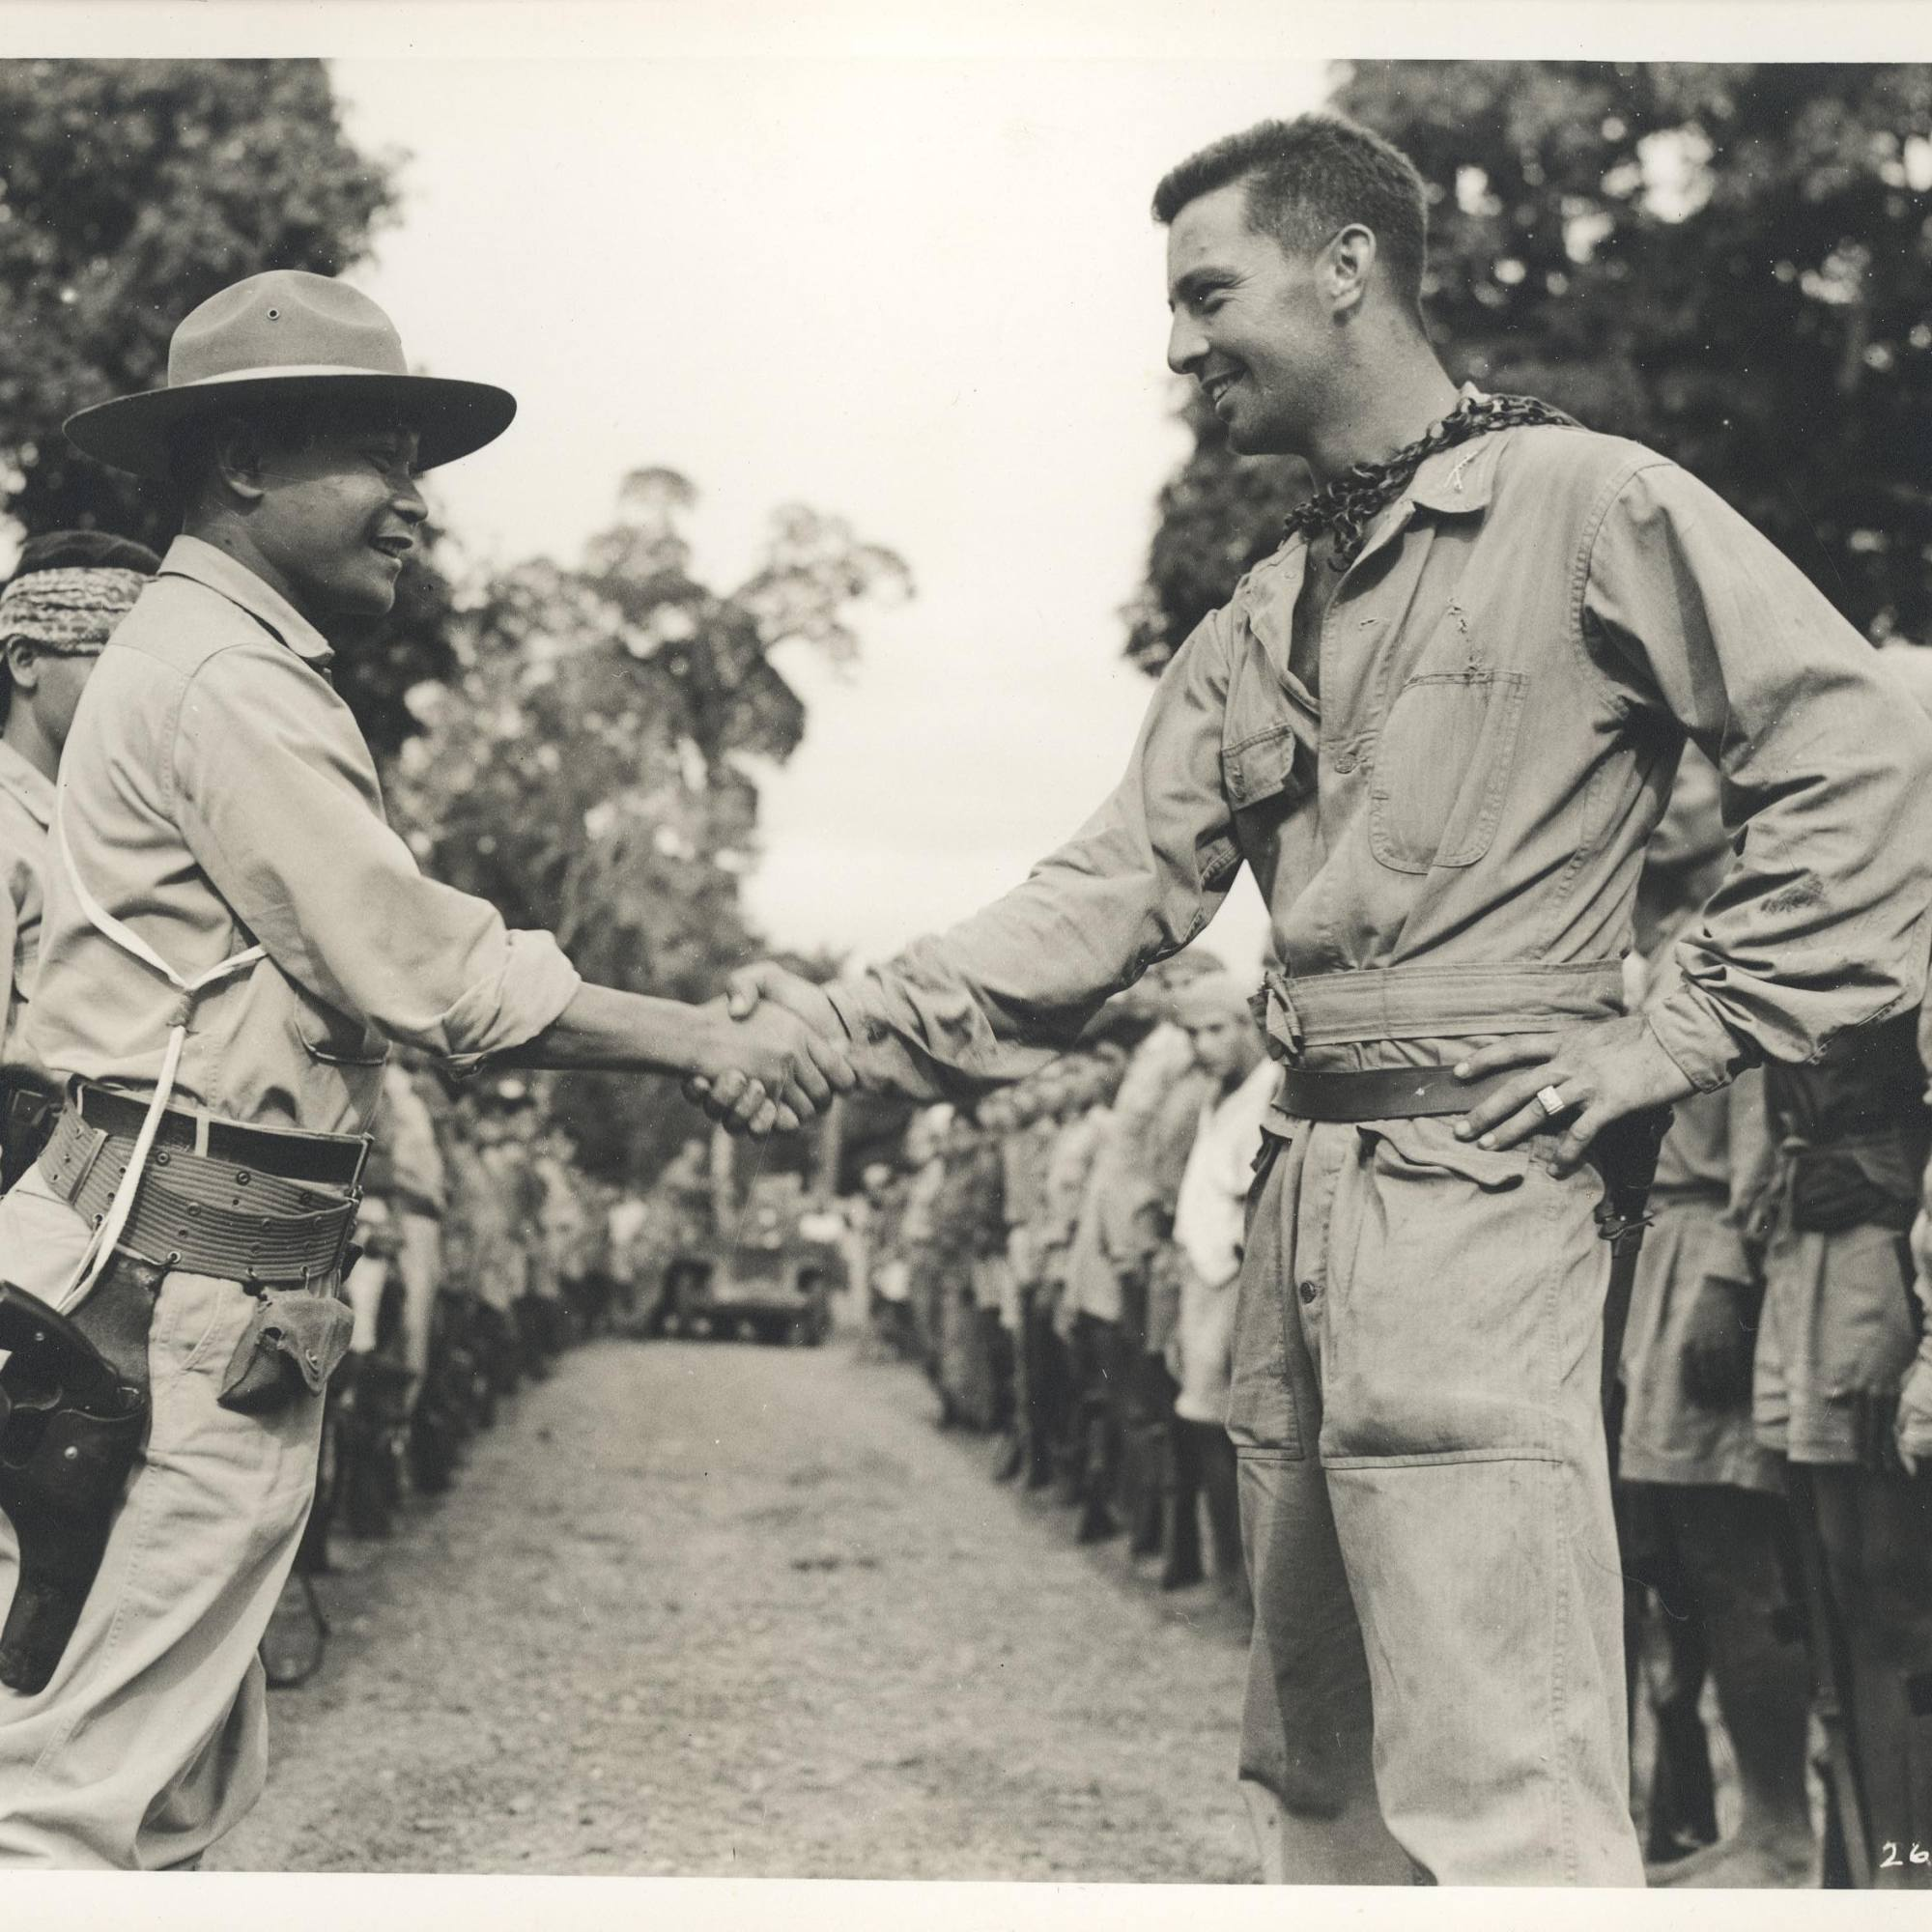 An American soldier and a Filipino soldier shake hands in the jungle while surrounded by more Filipino soldiers